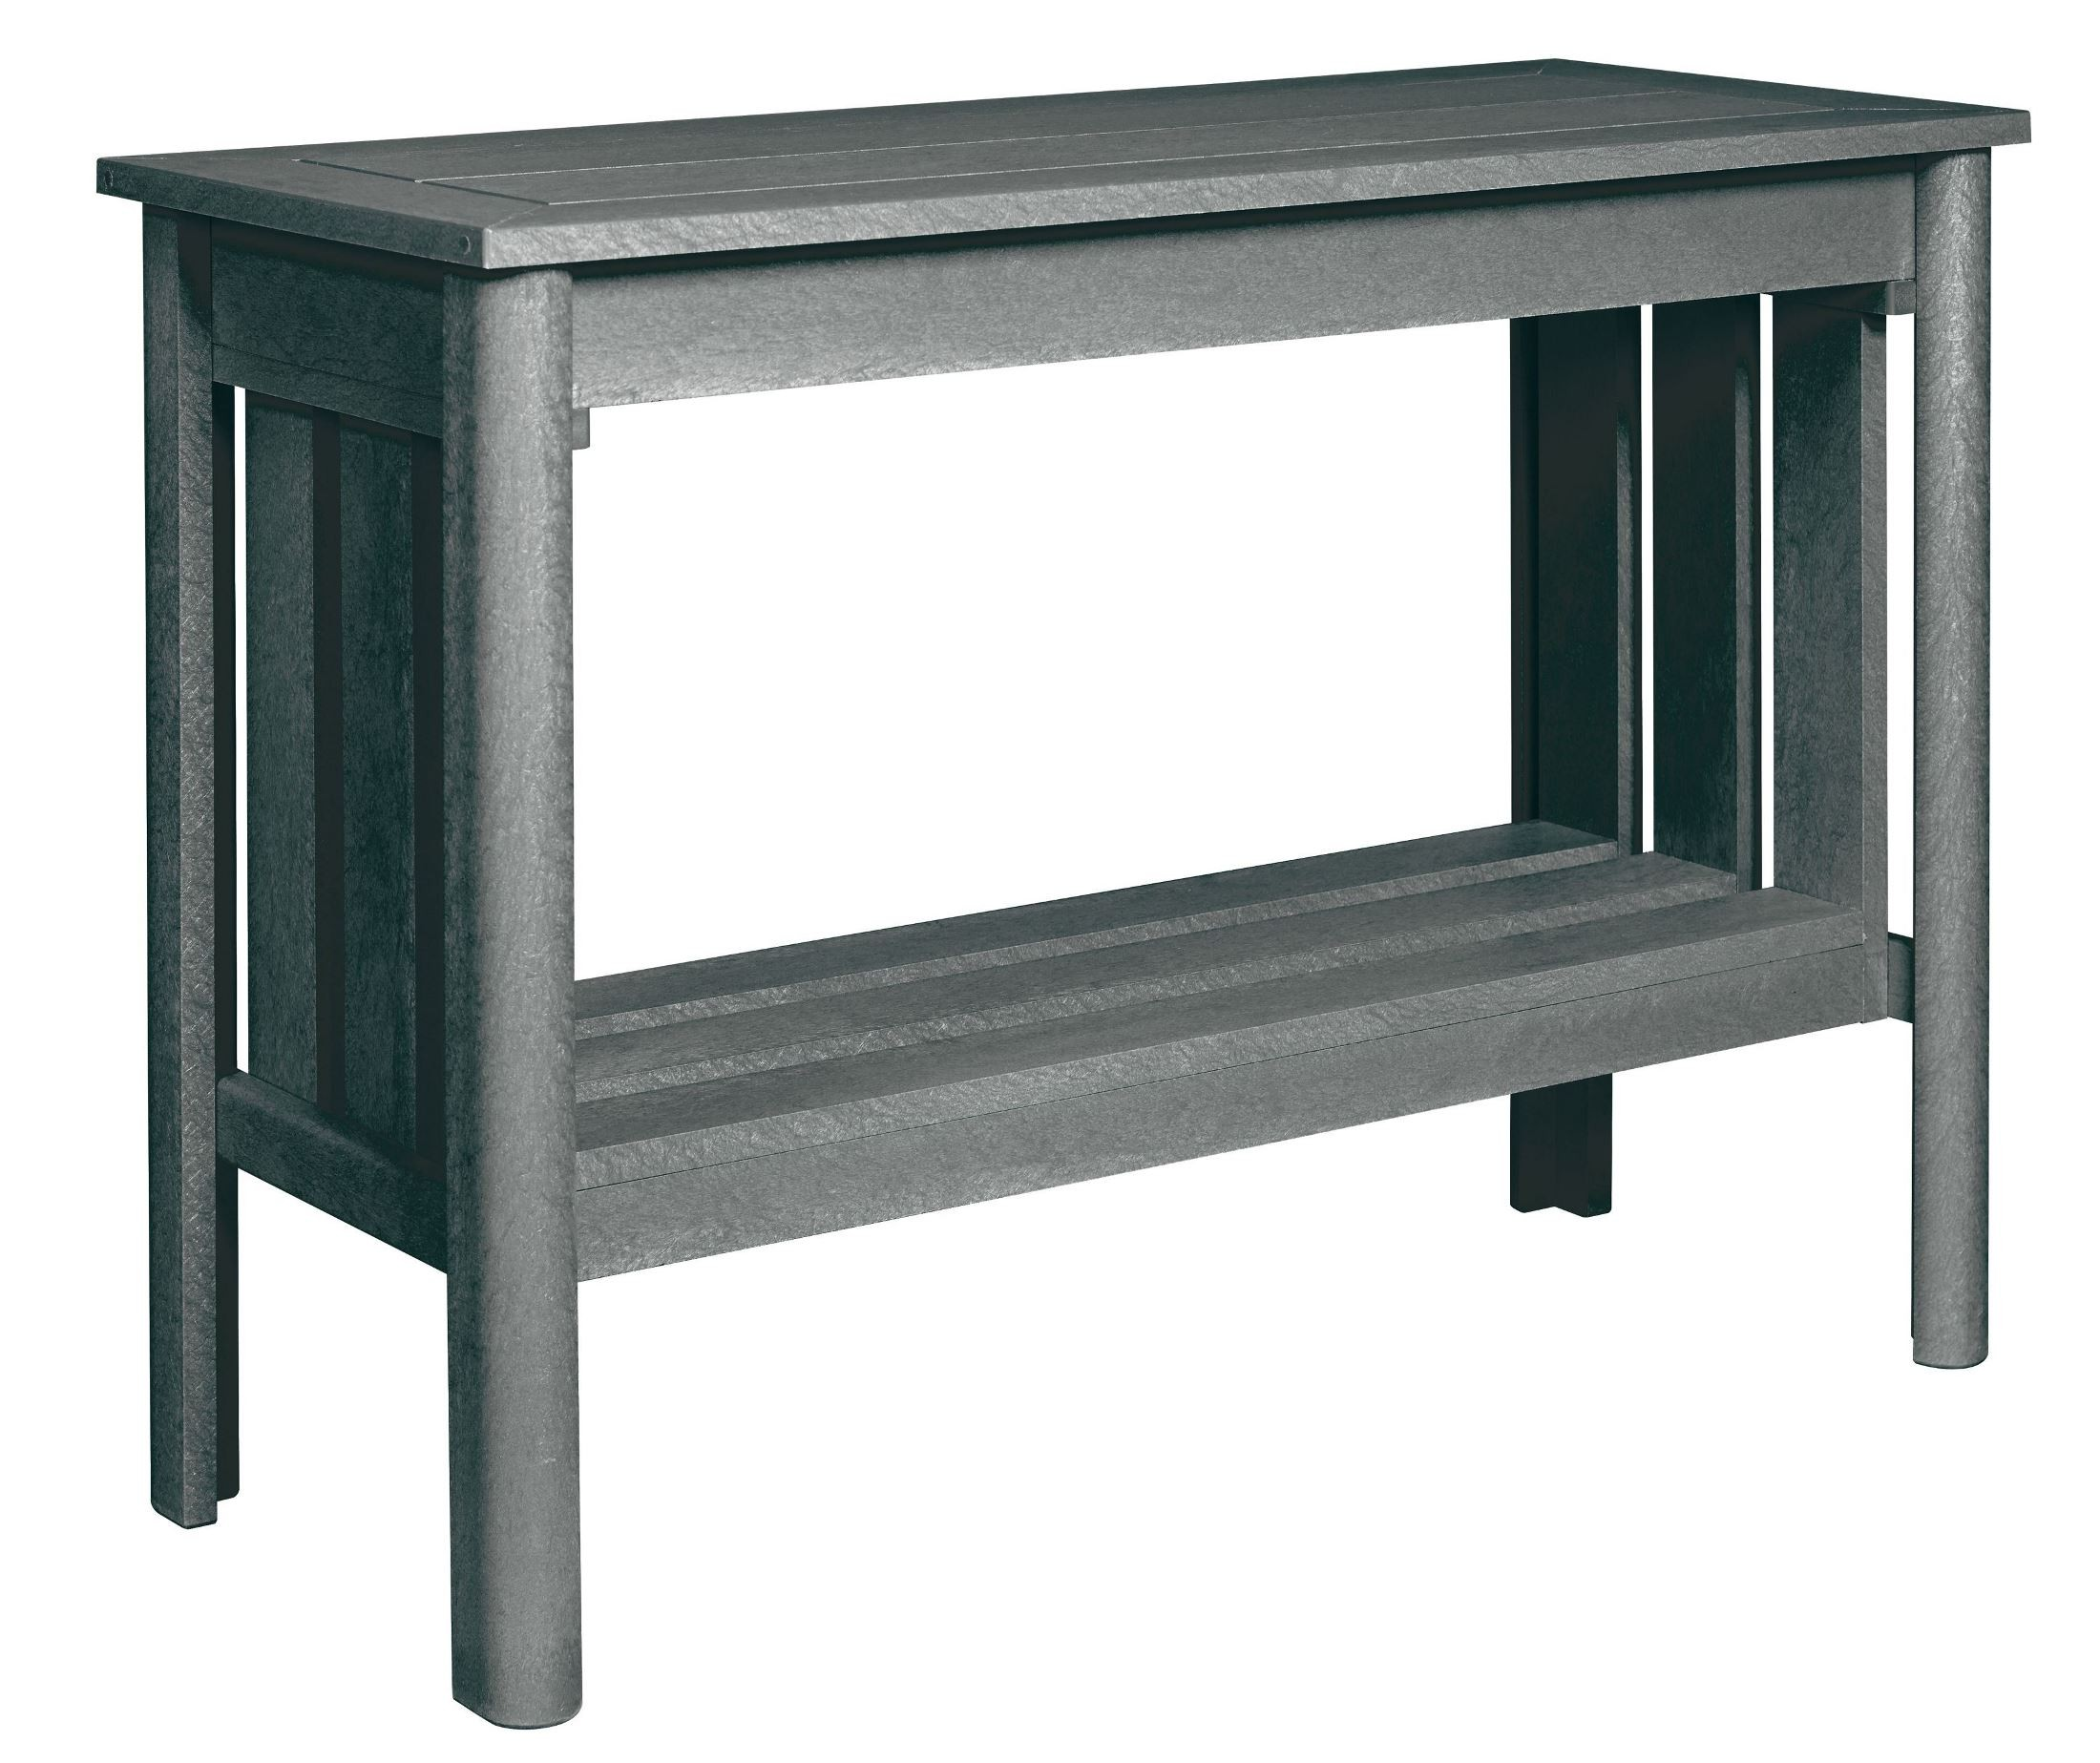 Stratford slate gray sofa table from cr plastic dst149 18 for Sofa table grey